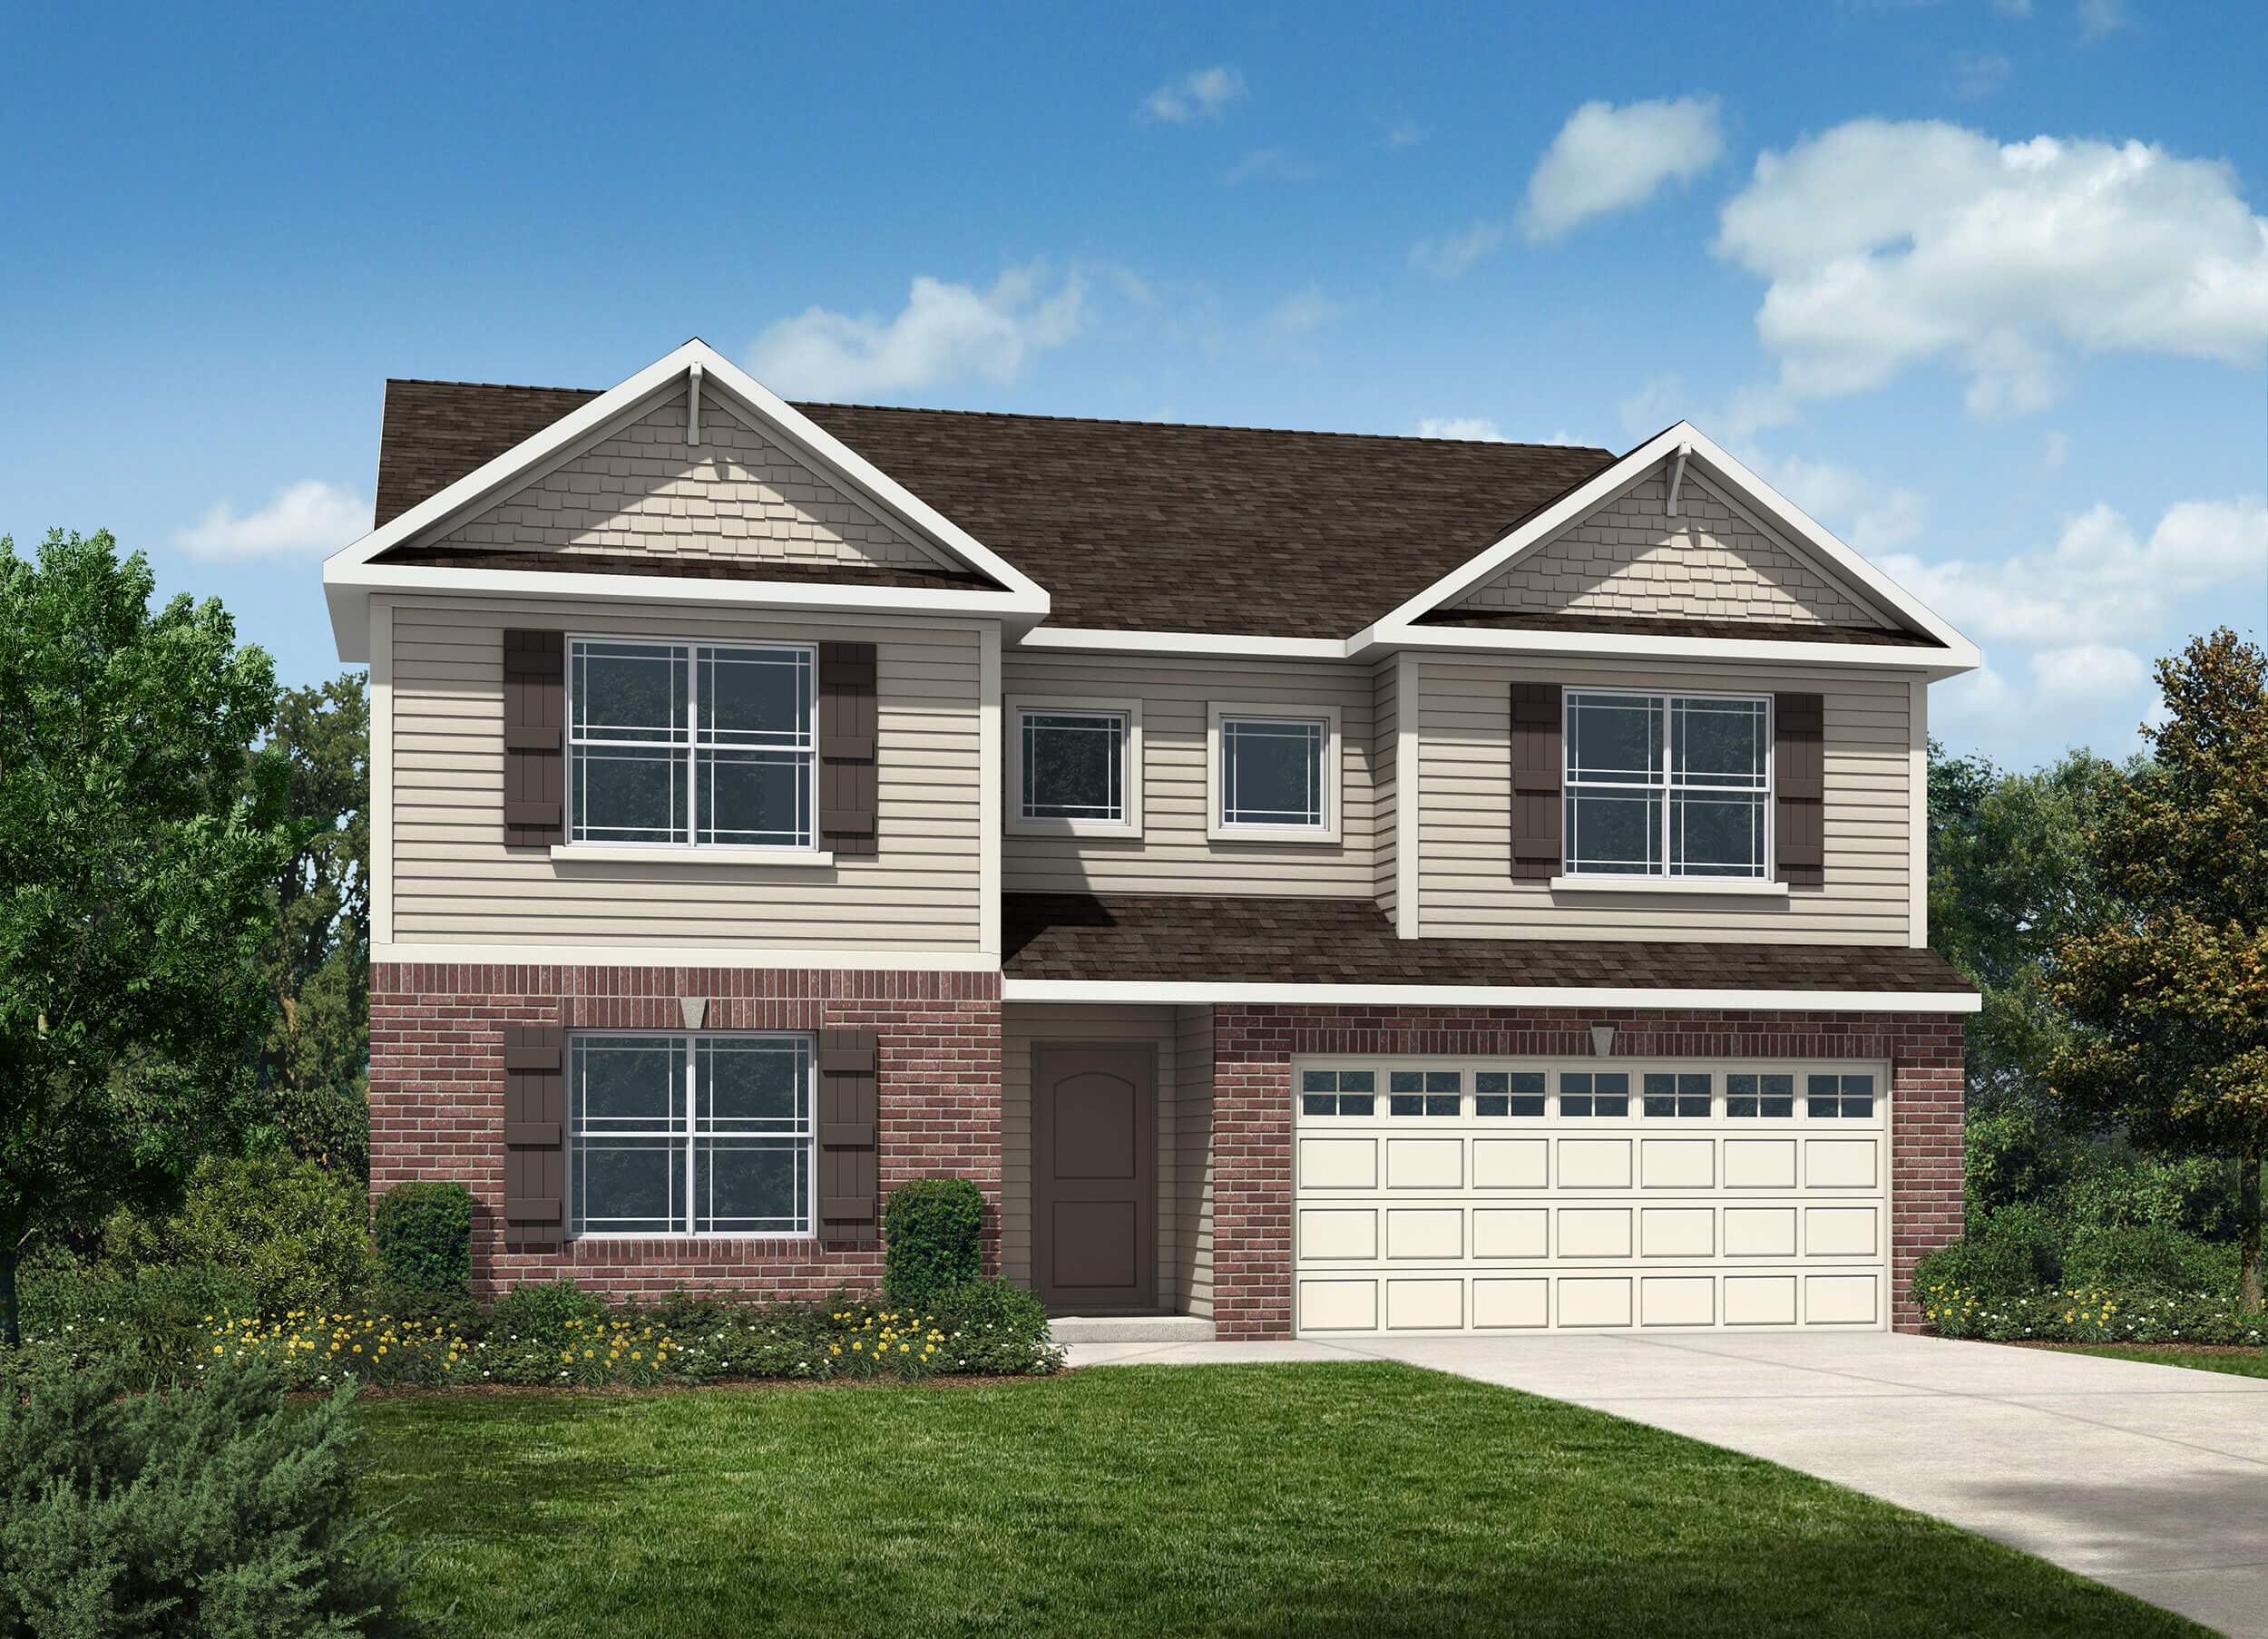 Westport homes of indianapolis stone crossing newport for Houses for sale westport